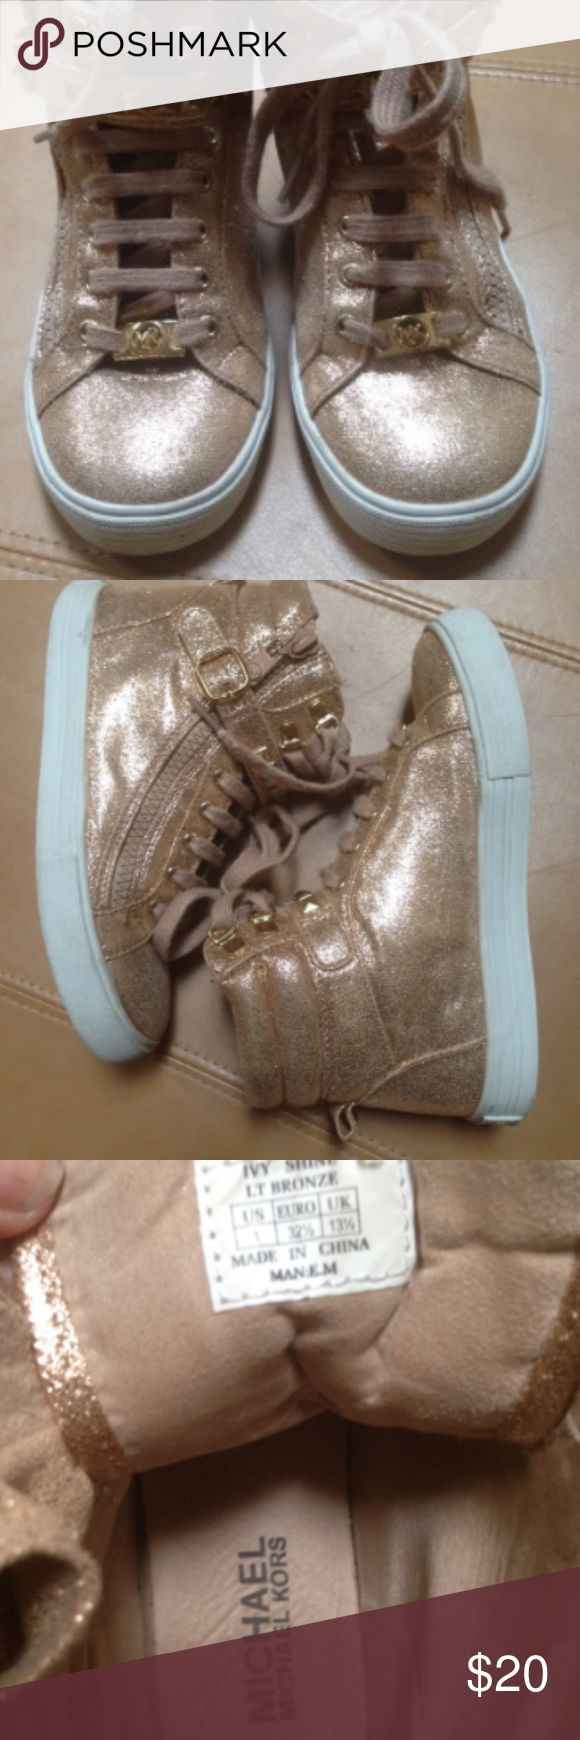 Ivy Shine Gold High Top Sneakers Great shape. Only worn a few times. Only sign of wear: slight paint wear on zipper pull edges, slight shoelace fuzzing and some wear on soles. Size 1. MICHAEL Michael Kors Shoes Sneakers